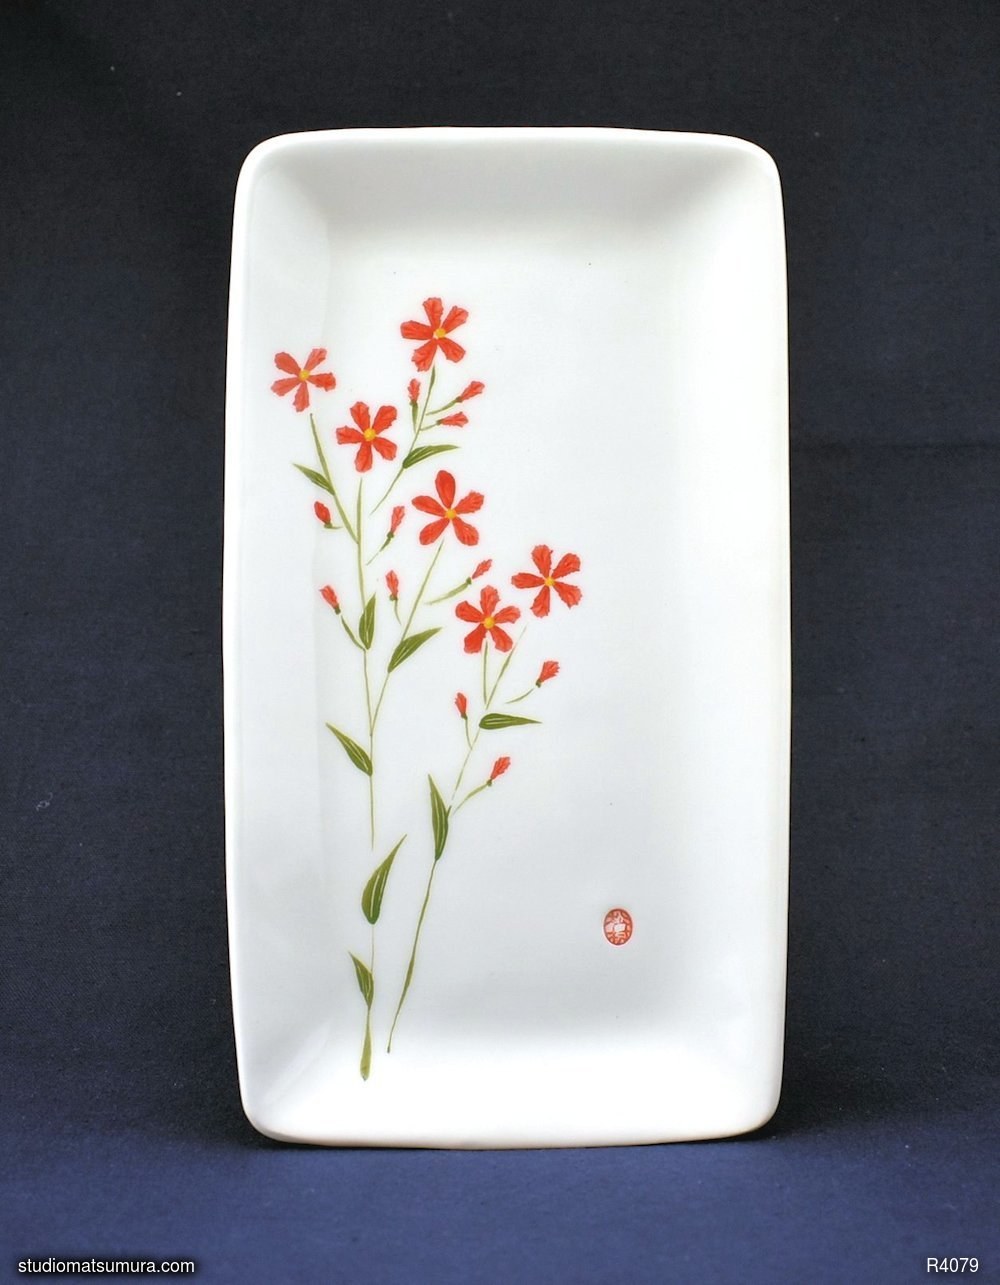 Handmade dinnerware with Sumi-e drawings of a Scarlet Flax